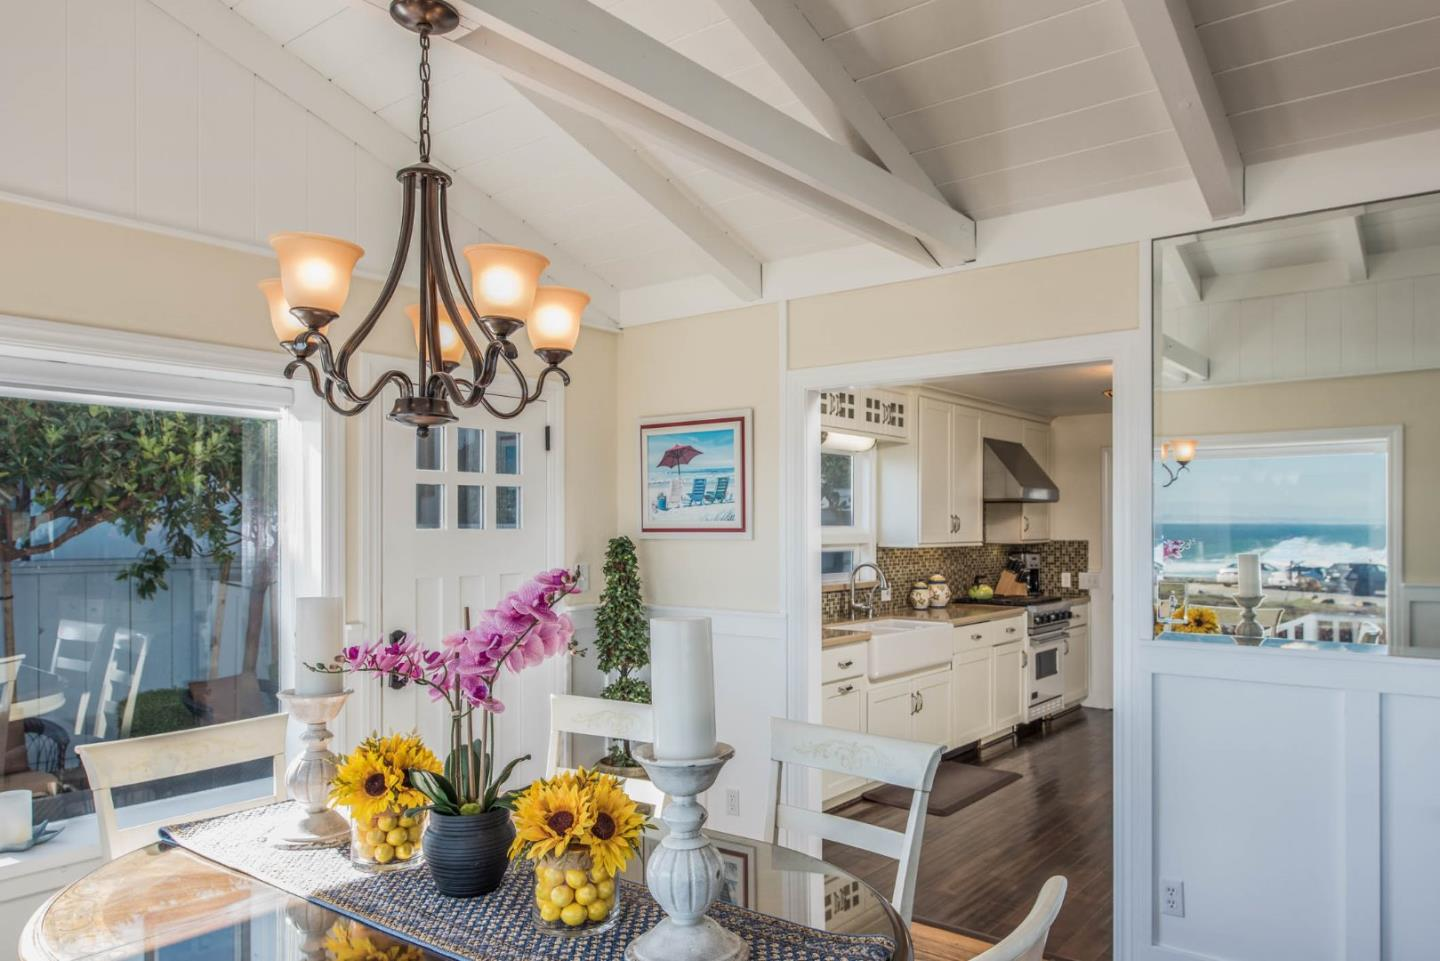 Additional photo for property listing at 929 Ocean View Blvd  PACIFIC GROVE, CALIFORNIA 93950